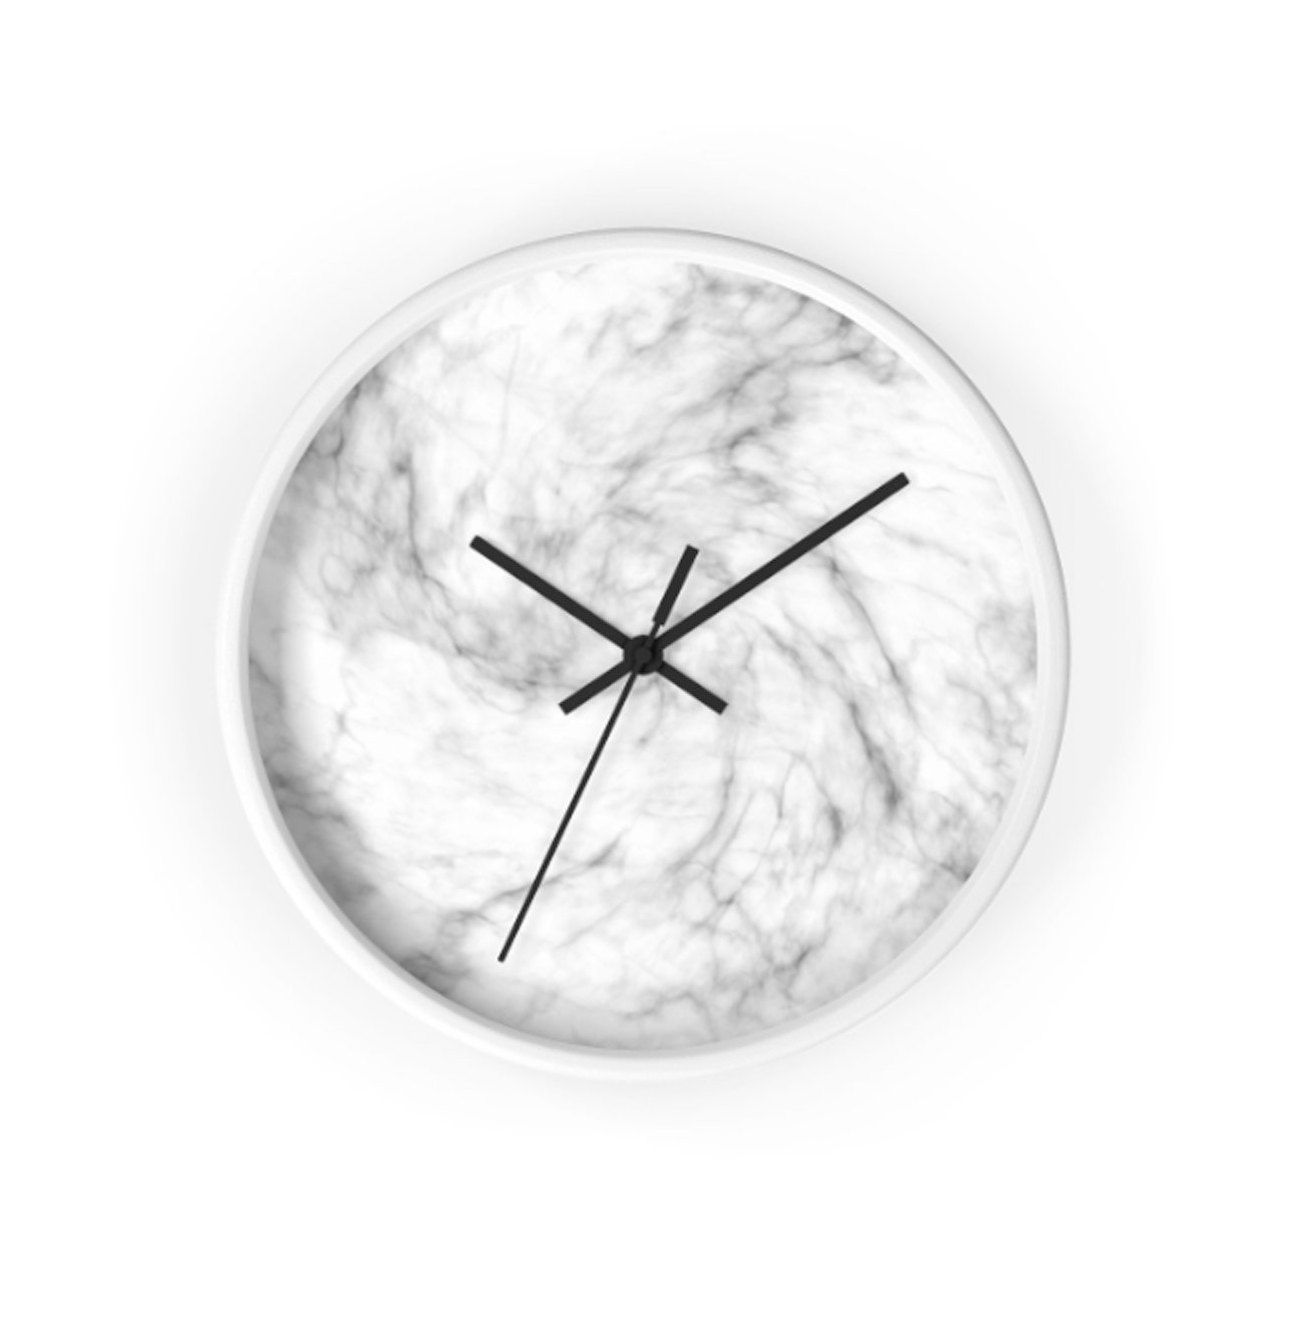 Marble Modern Wall Clock Small Round Clock No Numbers Modern Gray Office Decor Marbleclock Blackframec Small Wall Clock Wall Clock Modern Grey Office Decor